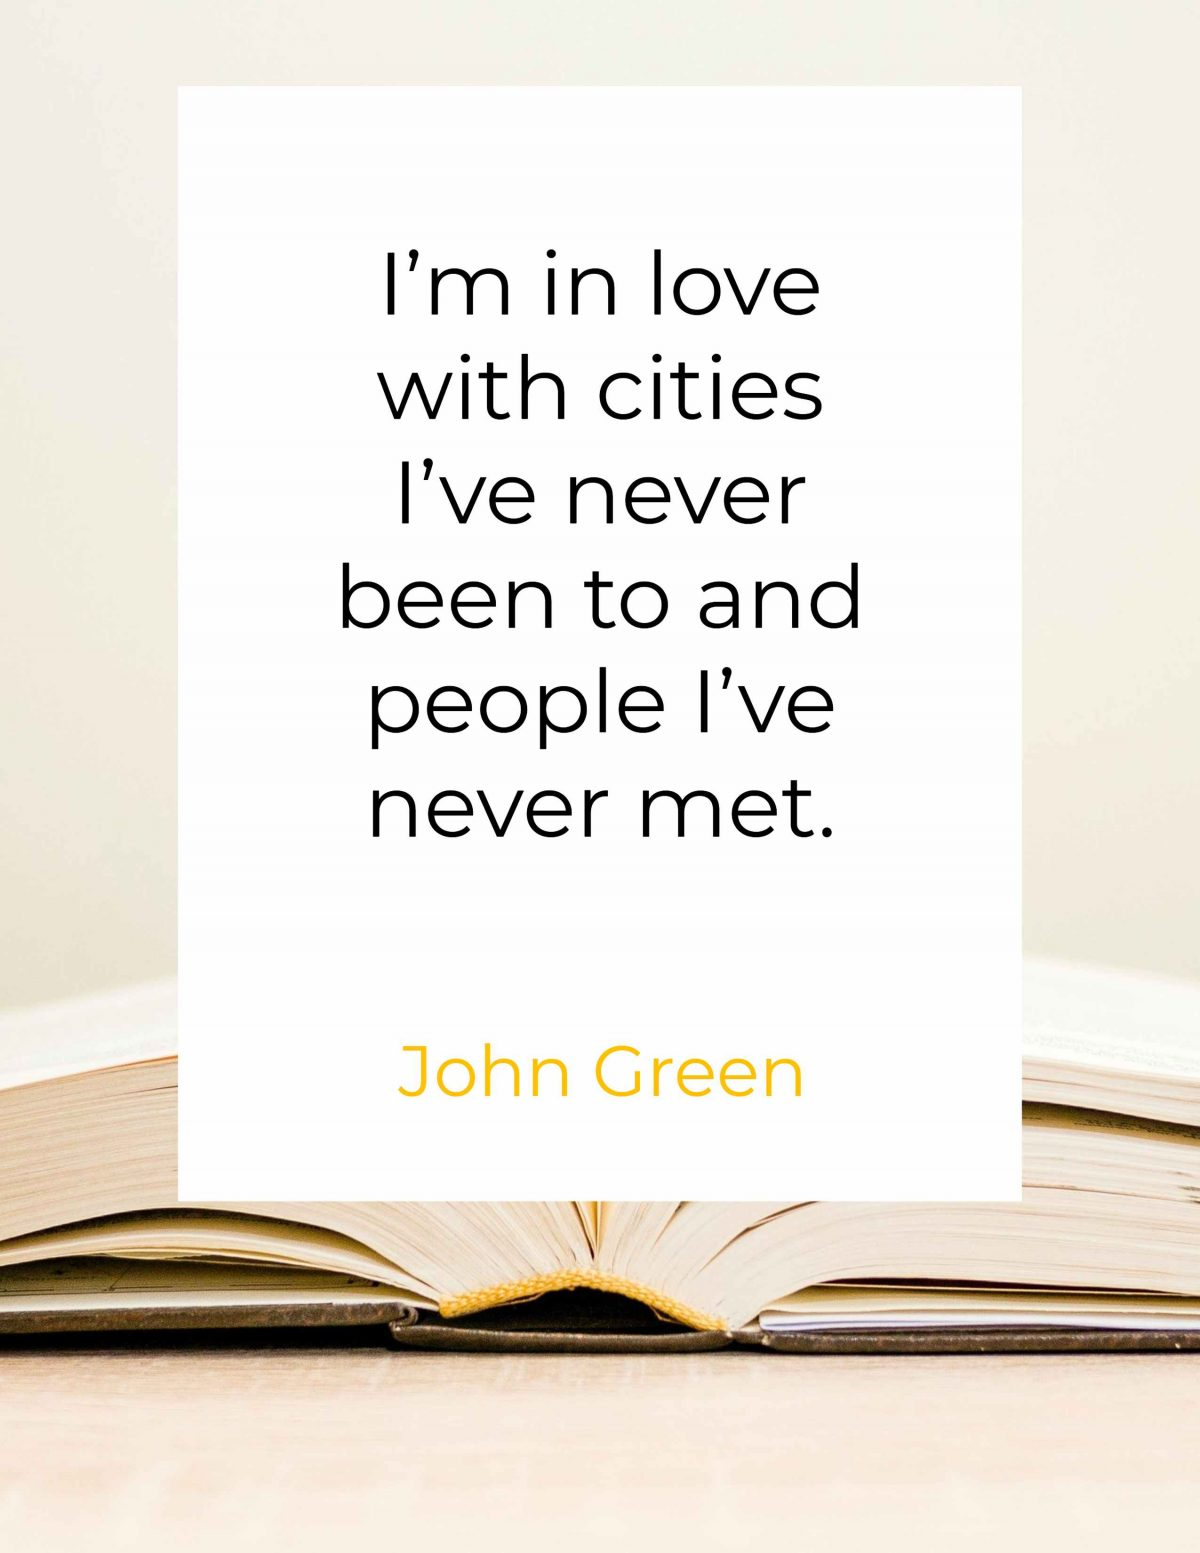 John Green Quotes John Green Quotes 4 | QuoteReel John Green Quotes